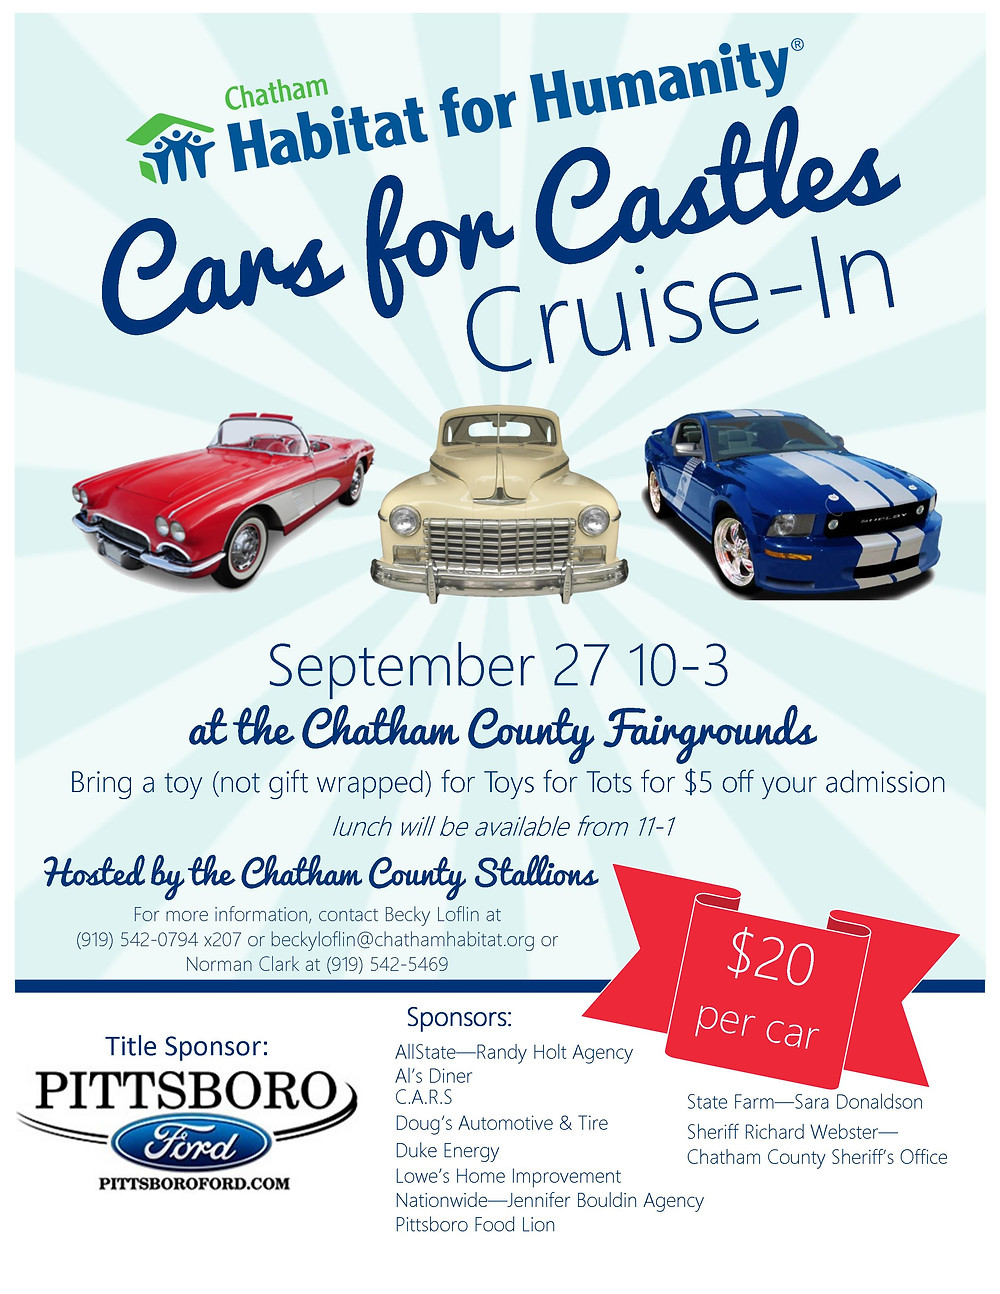 Cars for Castles Flyer (Working)